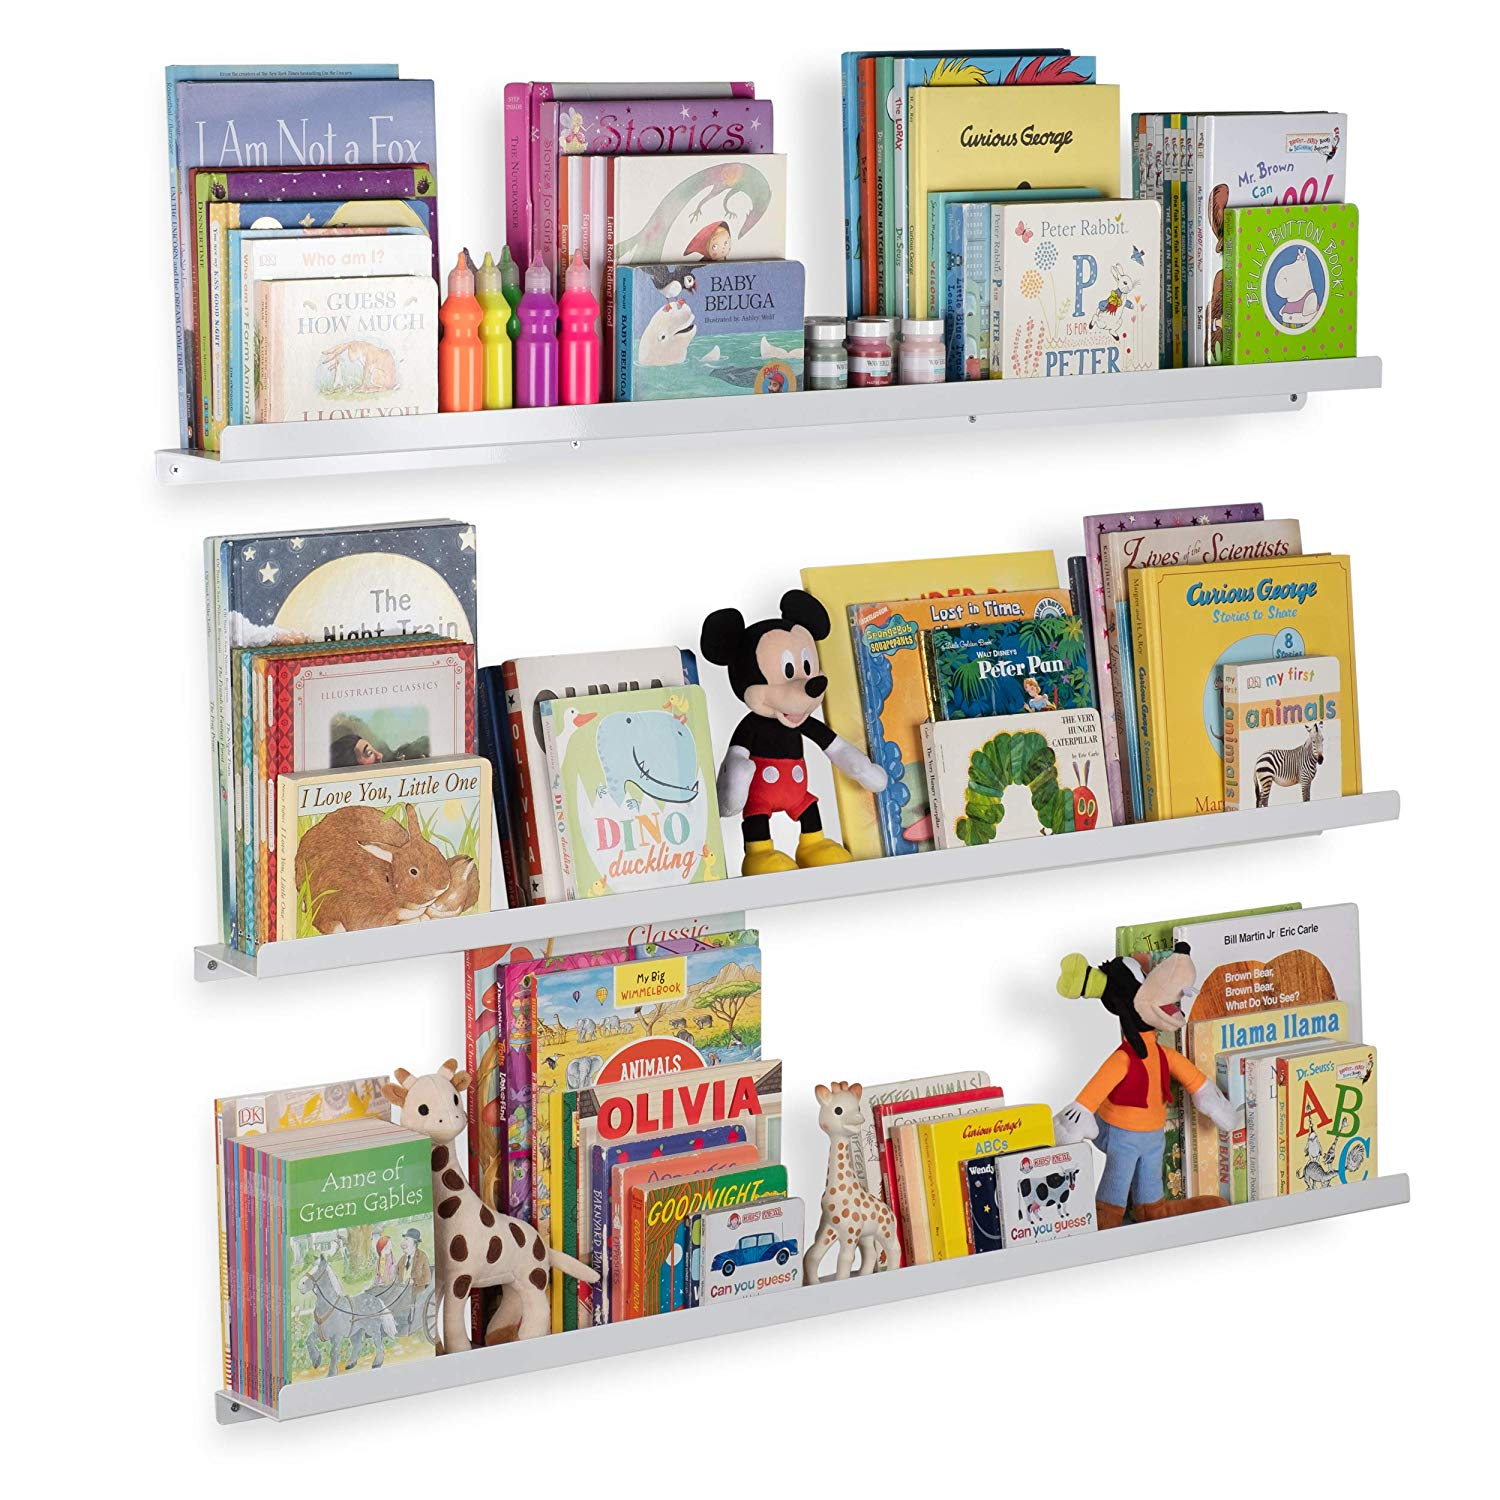 wallniture floating shelves for nursery and metal wall bookshelves mount book display ledges aluminum white inch set home kitchen coloured glass low shoe storage small corner